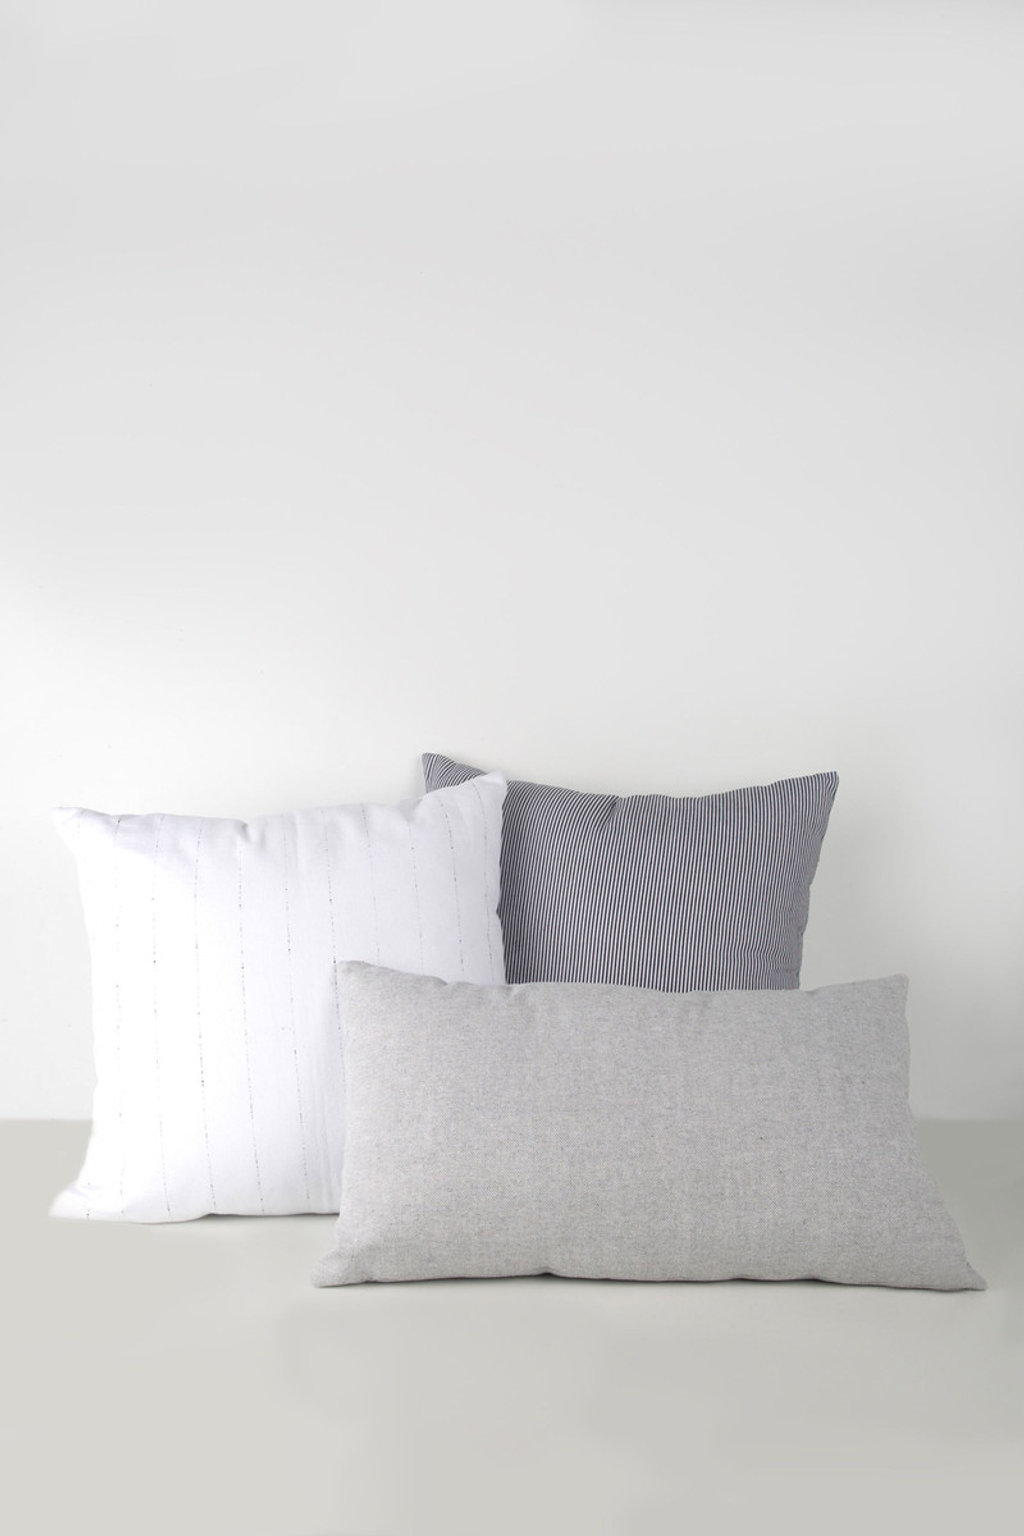 Dotted Line Print Pillow 1841 White 2